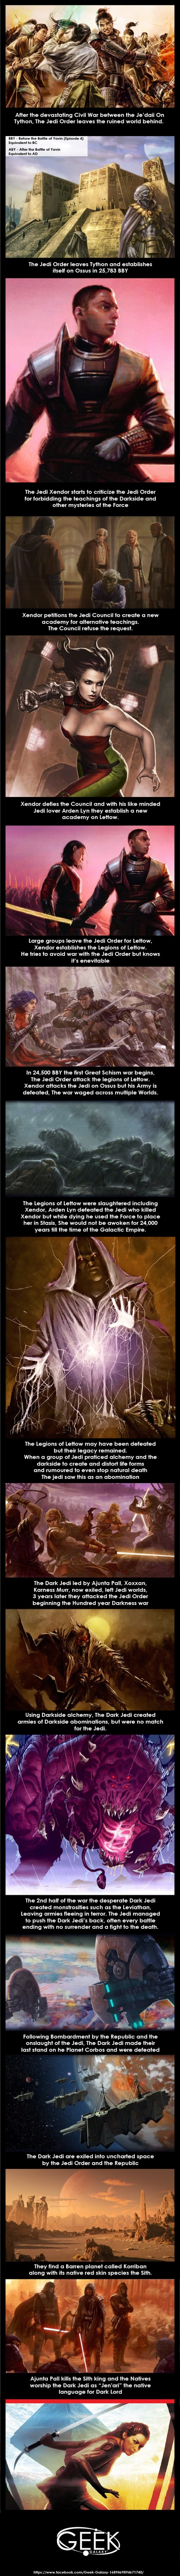 The Origins of the Dark Jedi